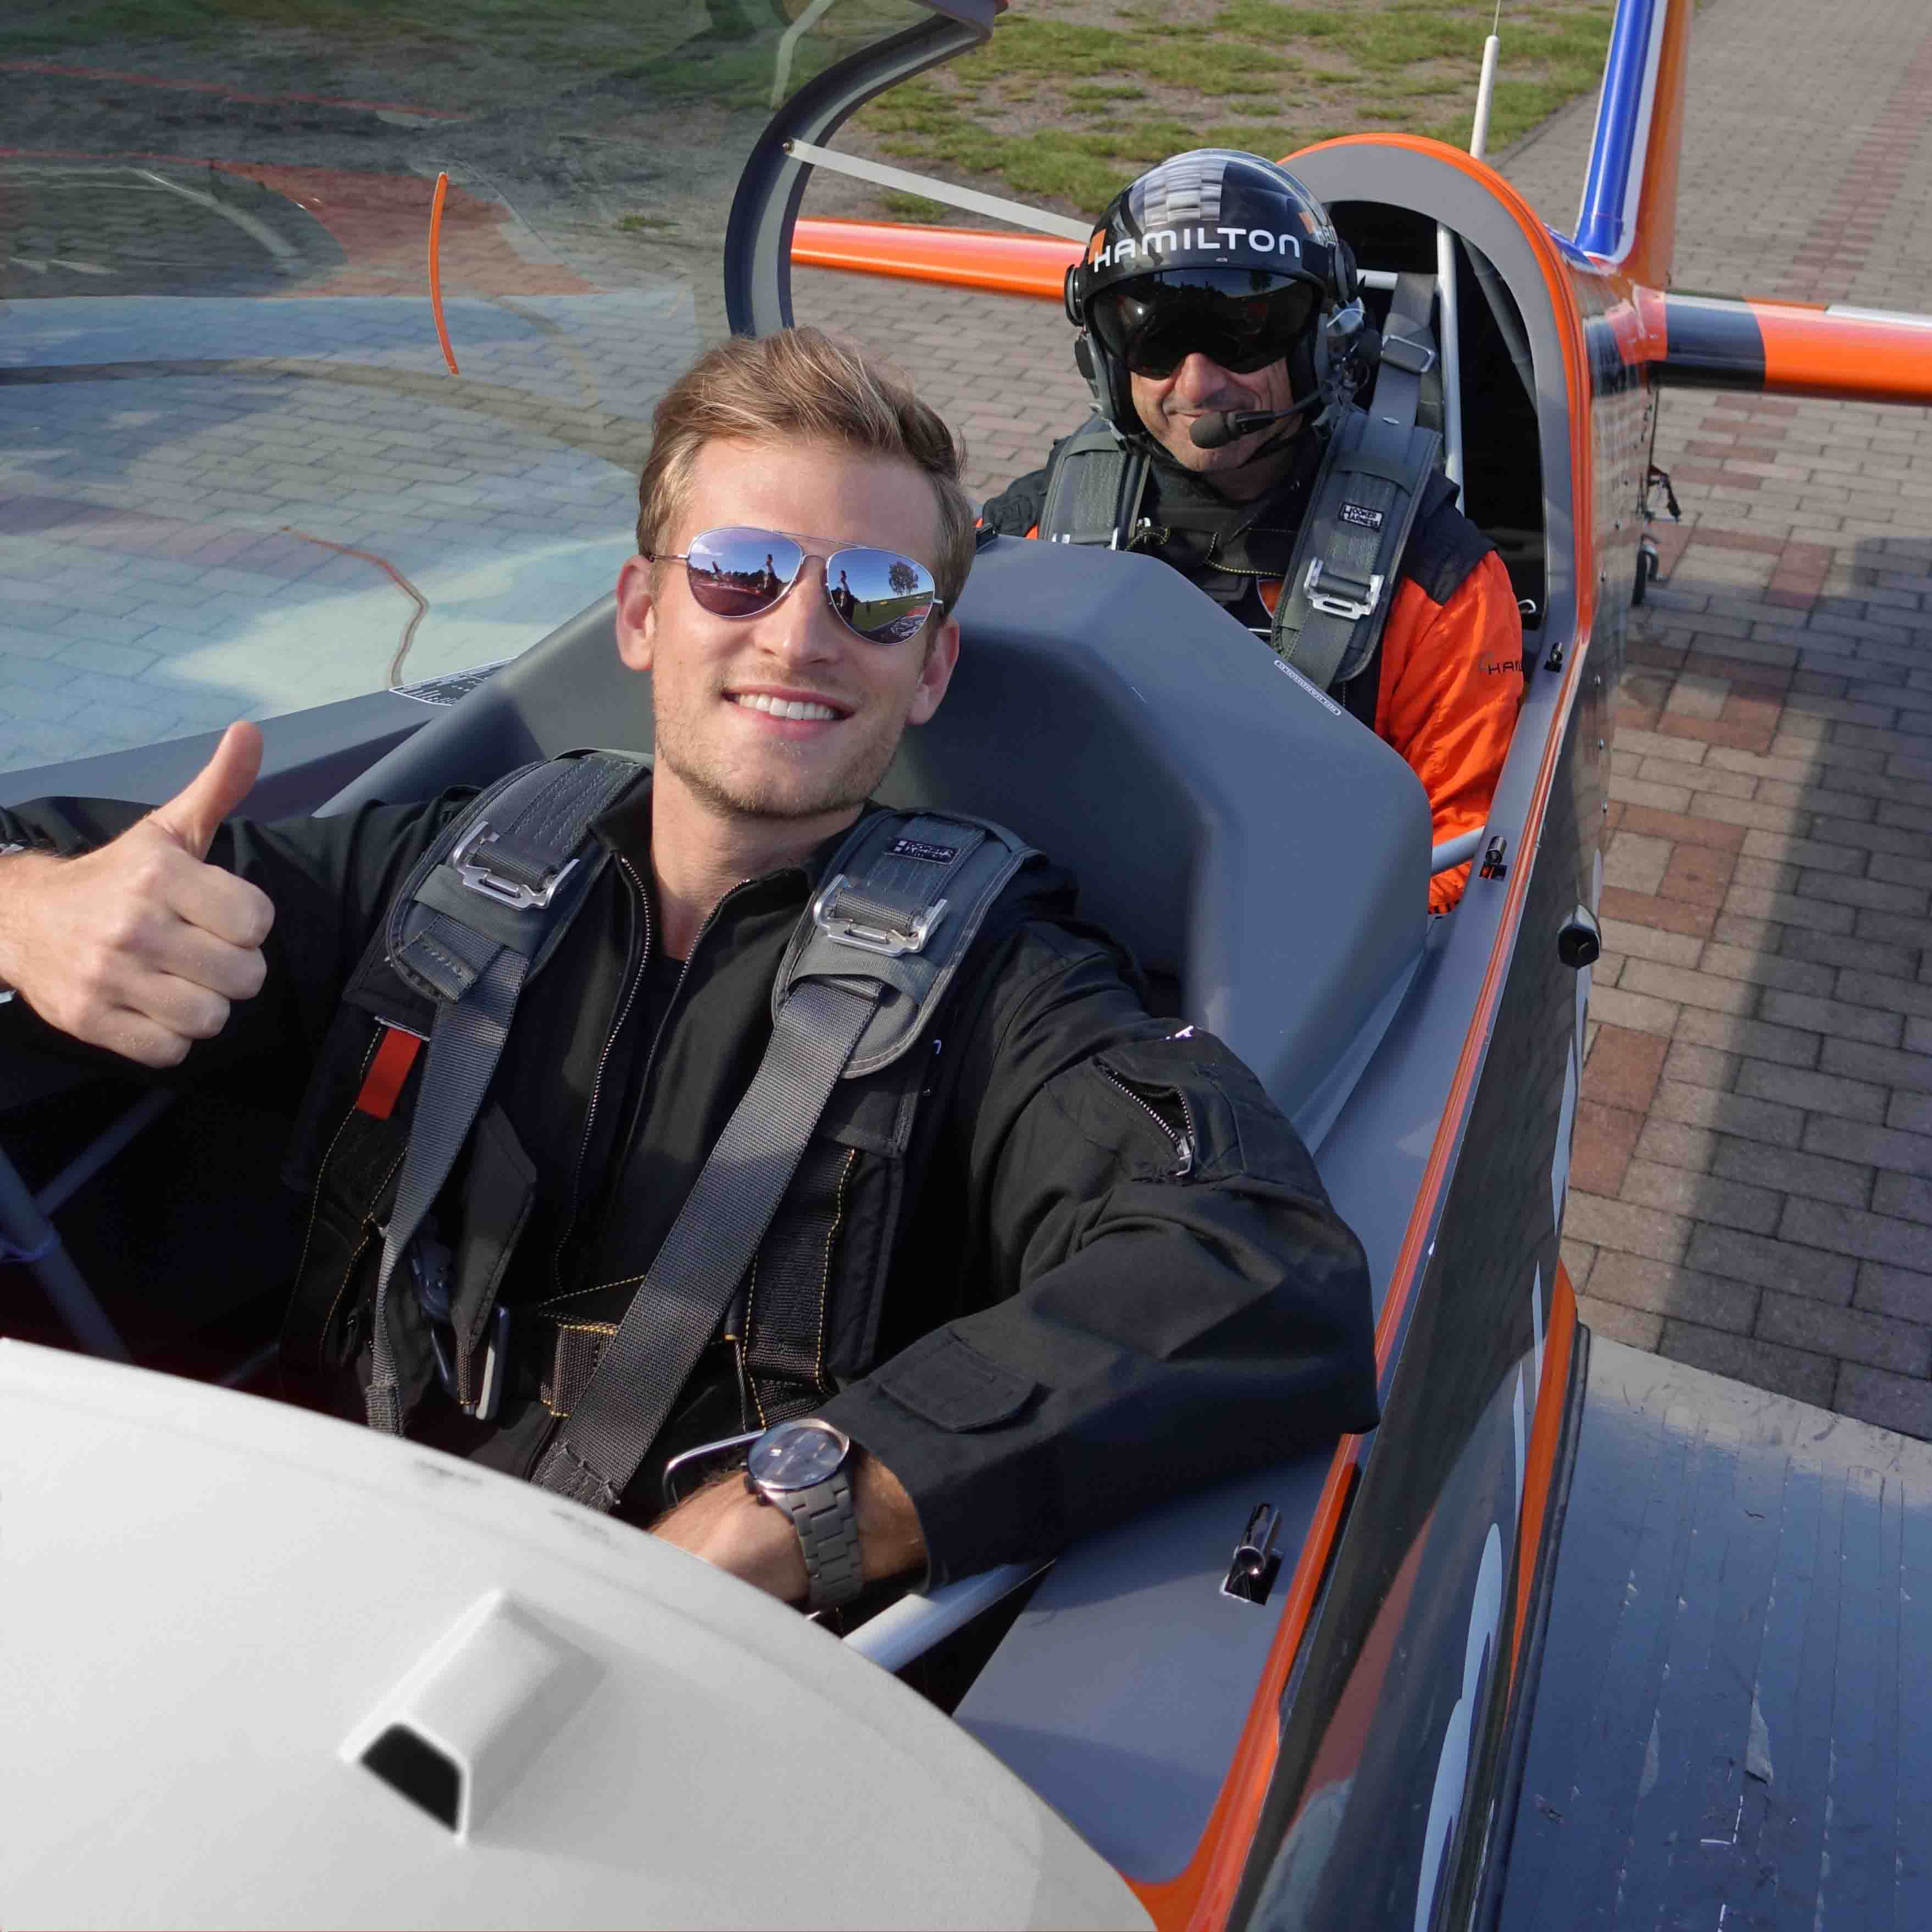 first time flying aerobatics